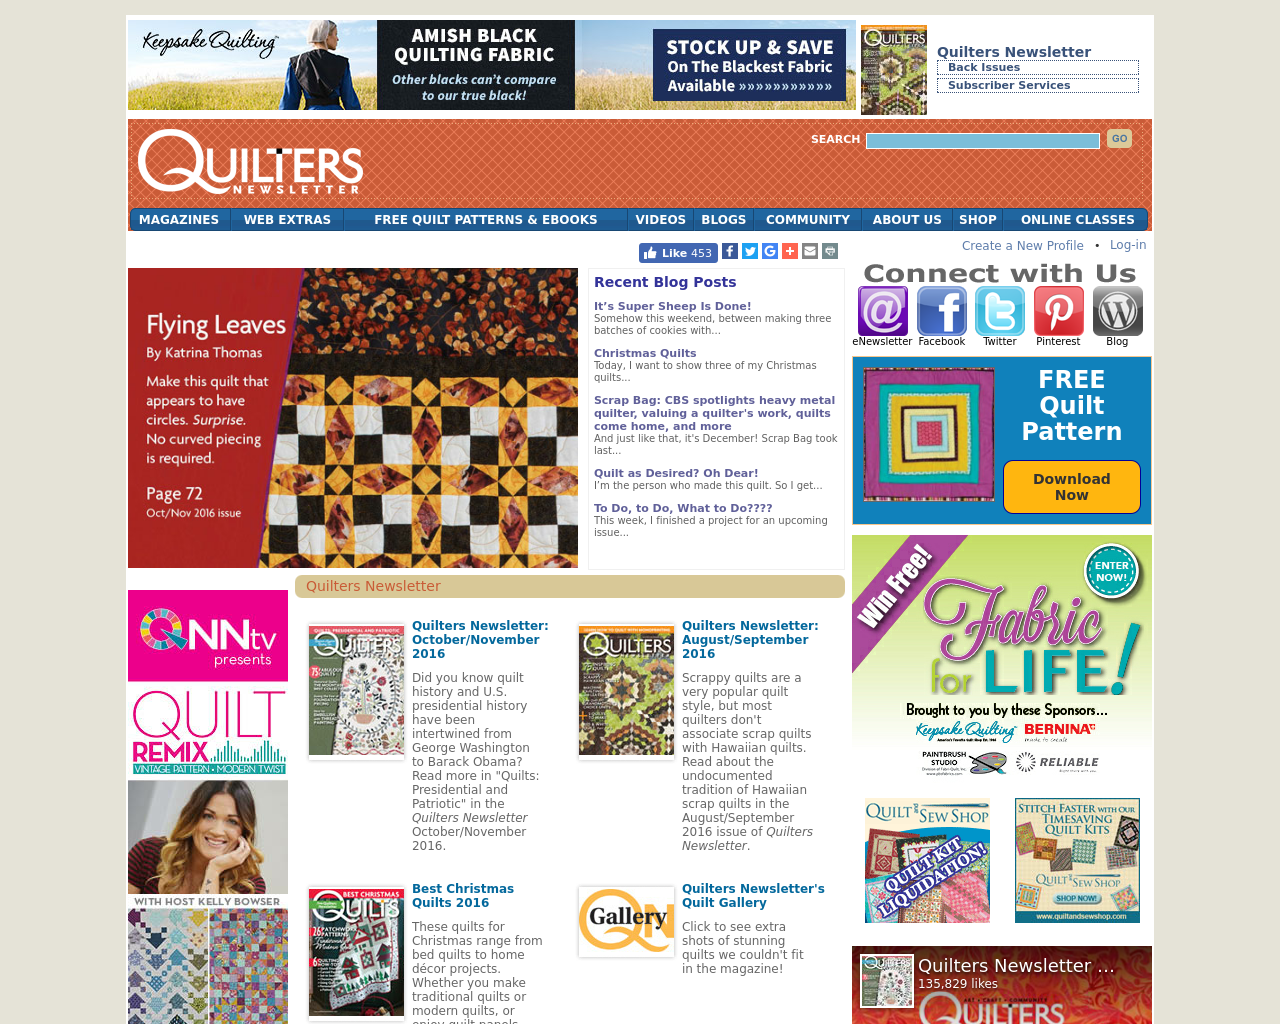 Quilters-Newsletter-Advertising-Reviews-Pricing